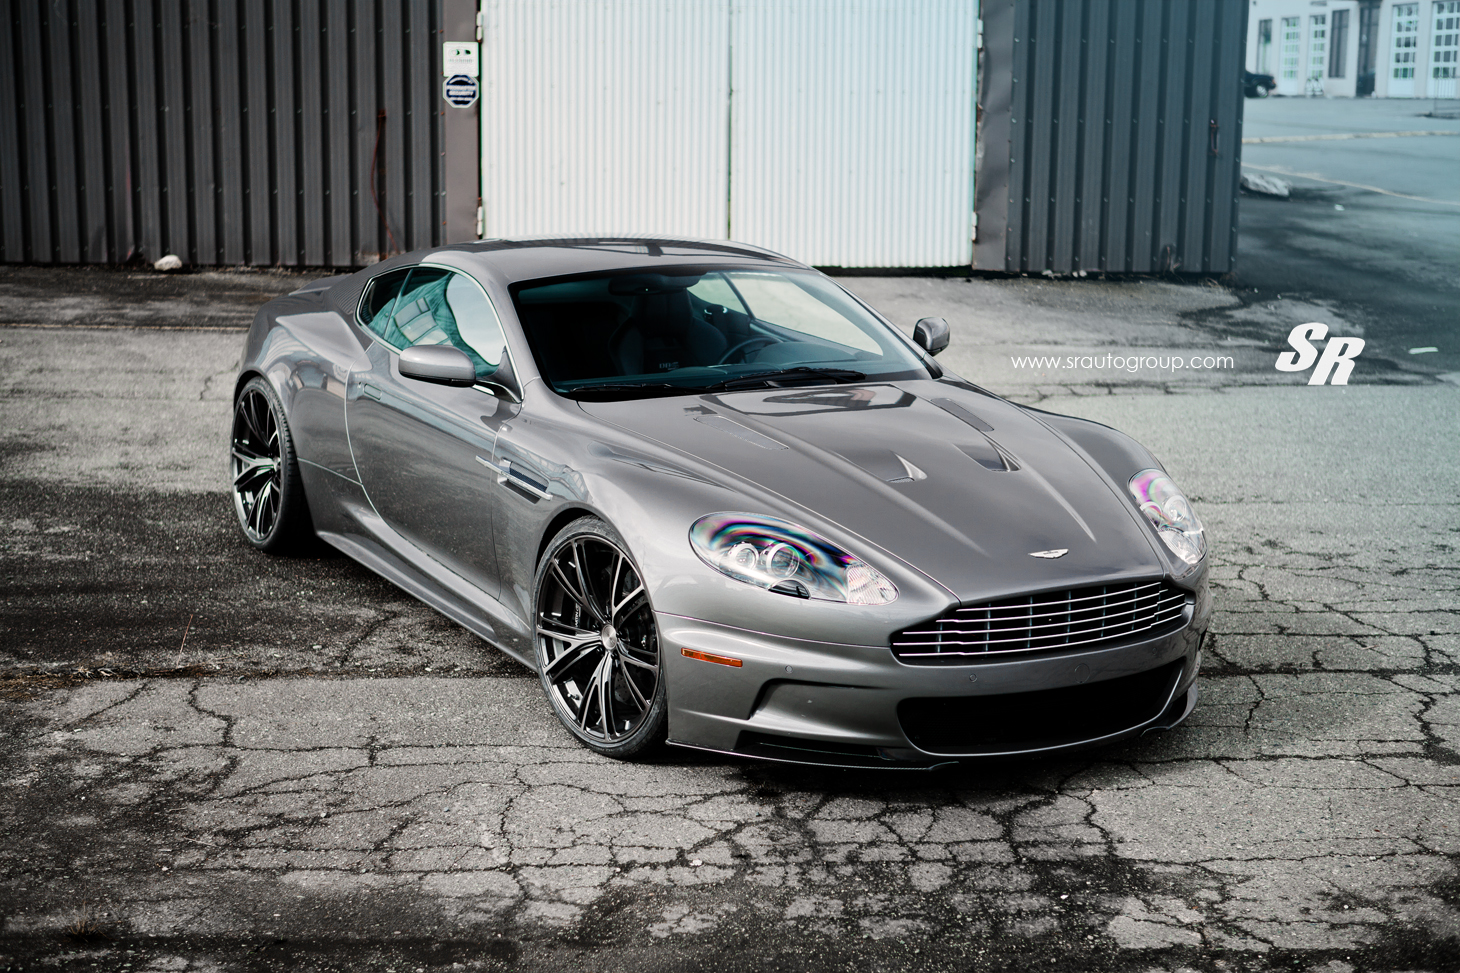 Aston Martin Dbs Tuning -  aston martin dbs on pur wheels